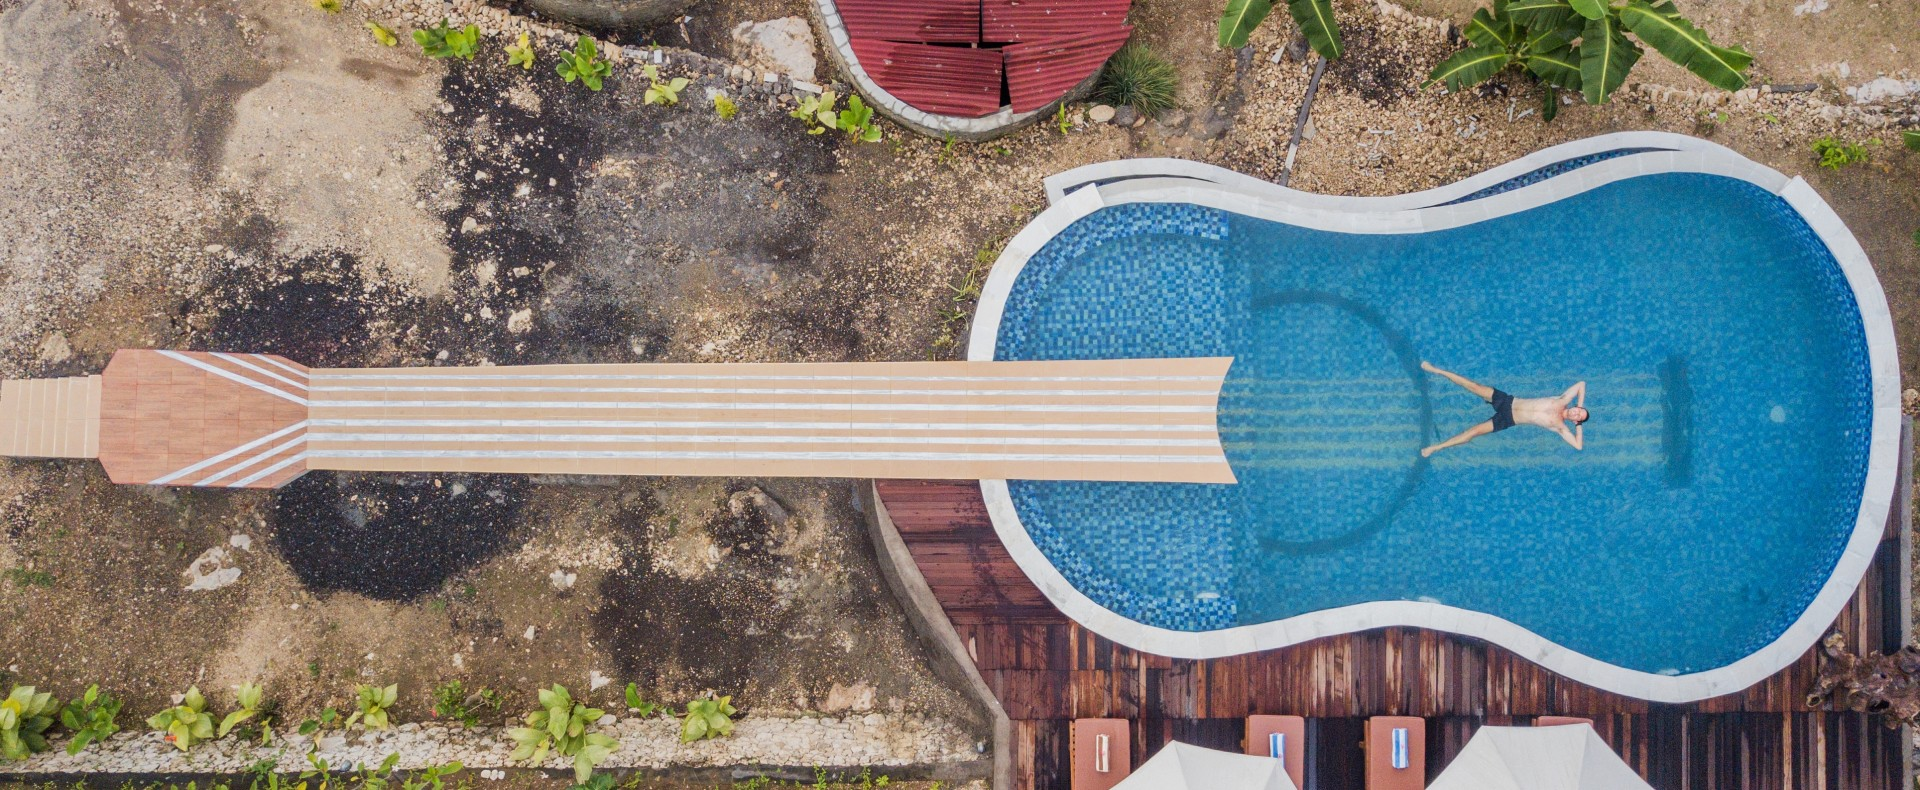 Cool Off In Style In One Of These Stunning Signature Swimming Pools